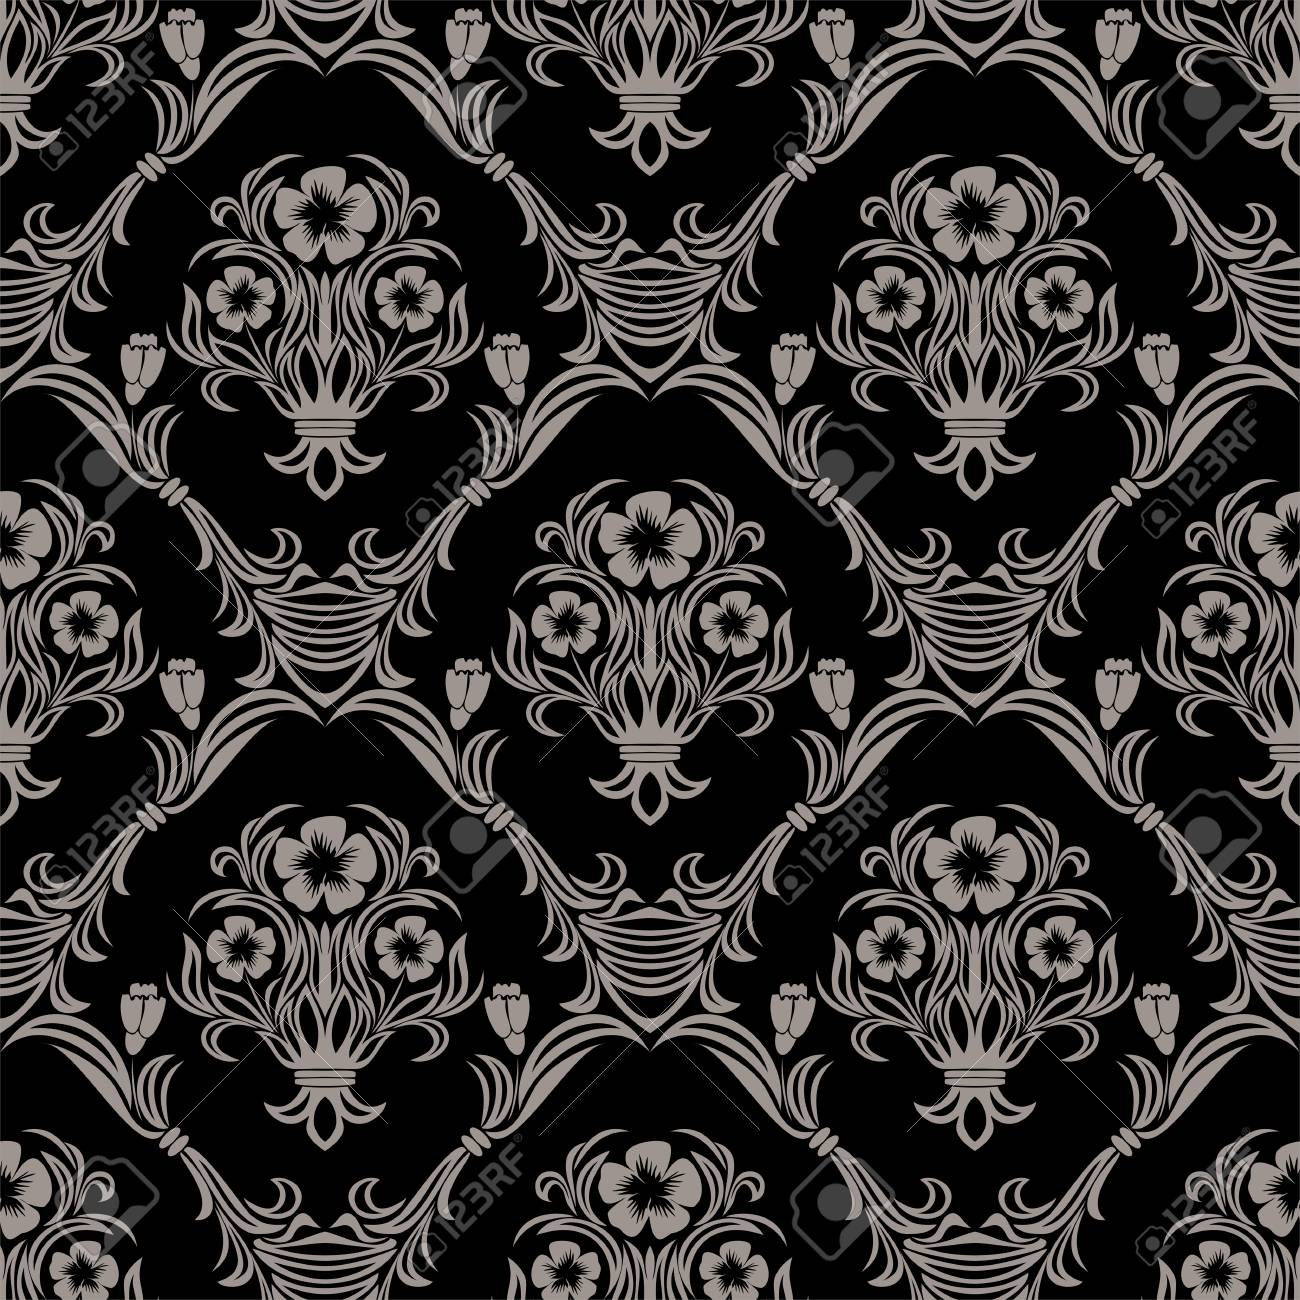 Seamless damask Wallpaper with flowers Ornament - 97509694